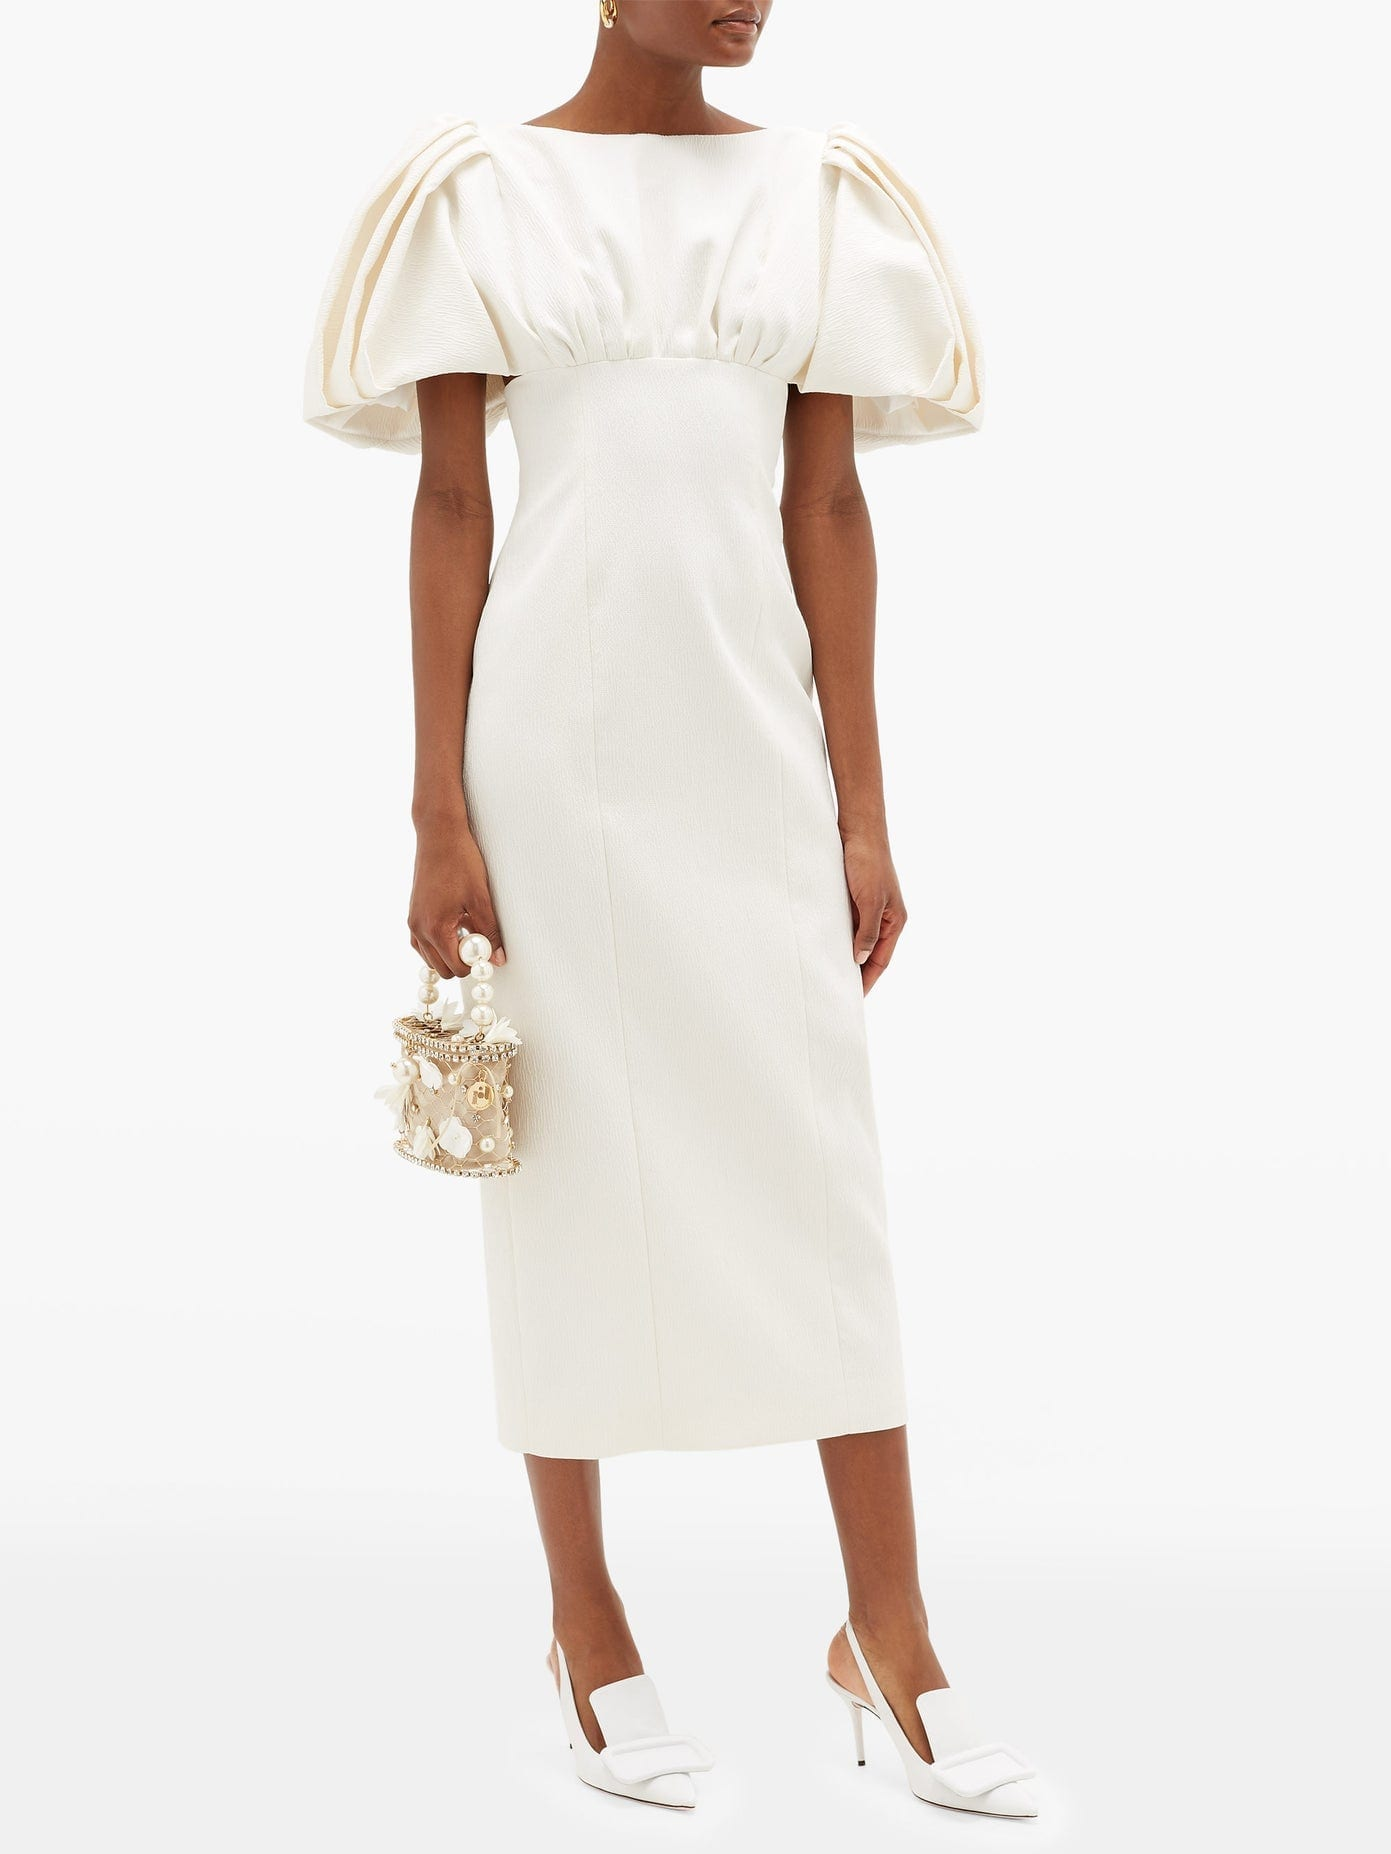 EMILIA WICKSTEAD Petunia Puffed-sleeve Textured-cloqué Dress